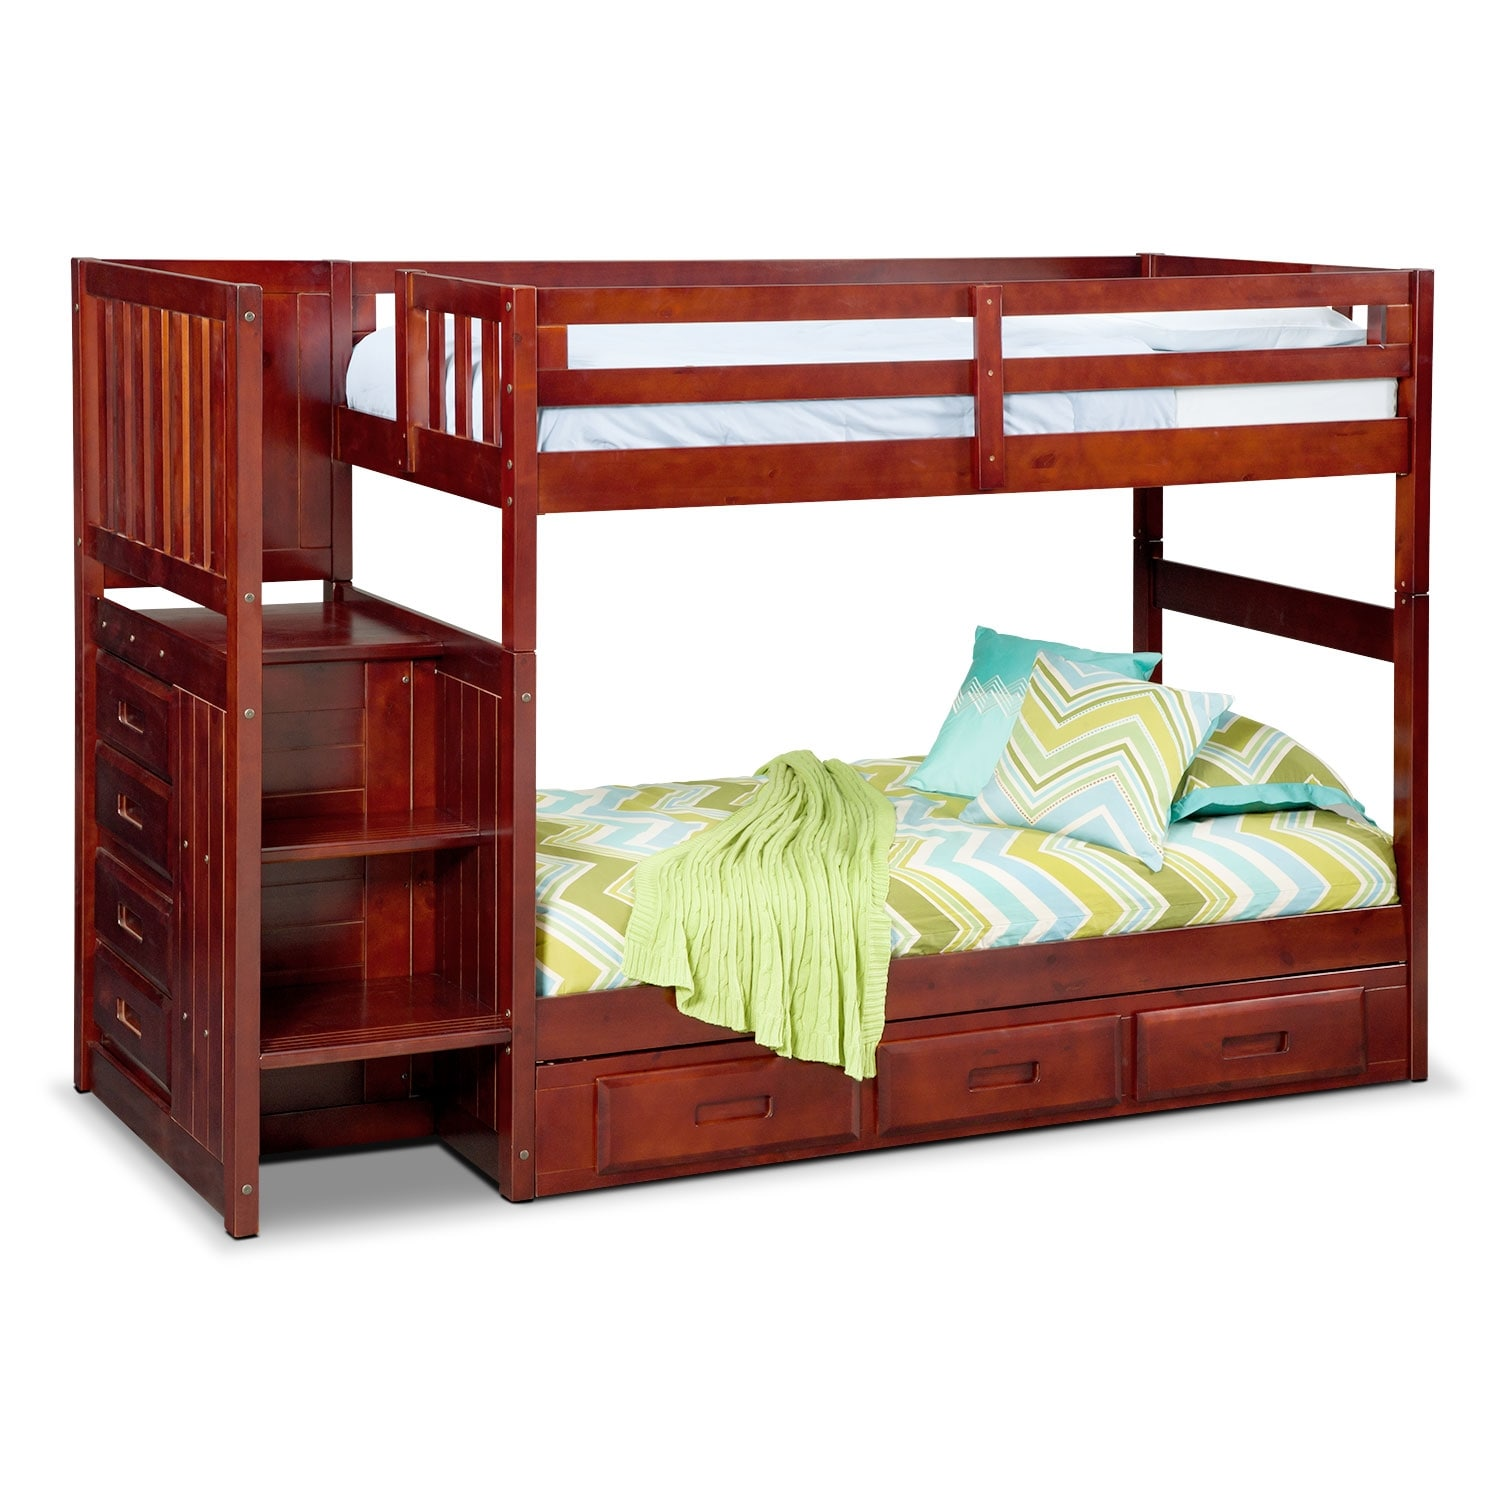 Ranger twin over twin bunk bed with storage stairs underbed drawers merlot american - Bunkbeds with drawers ...